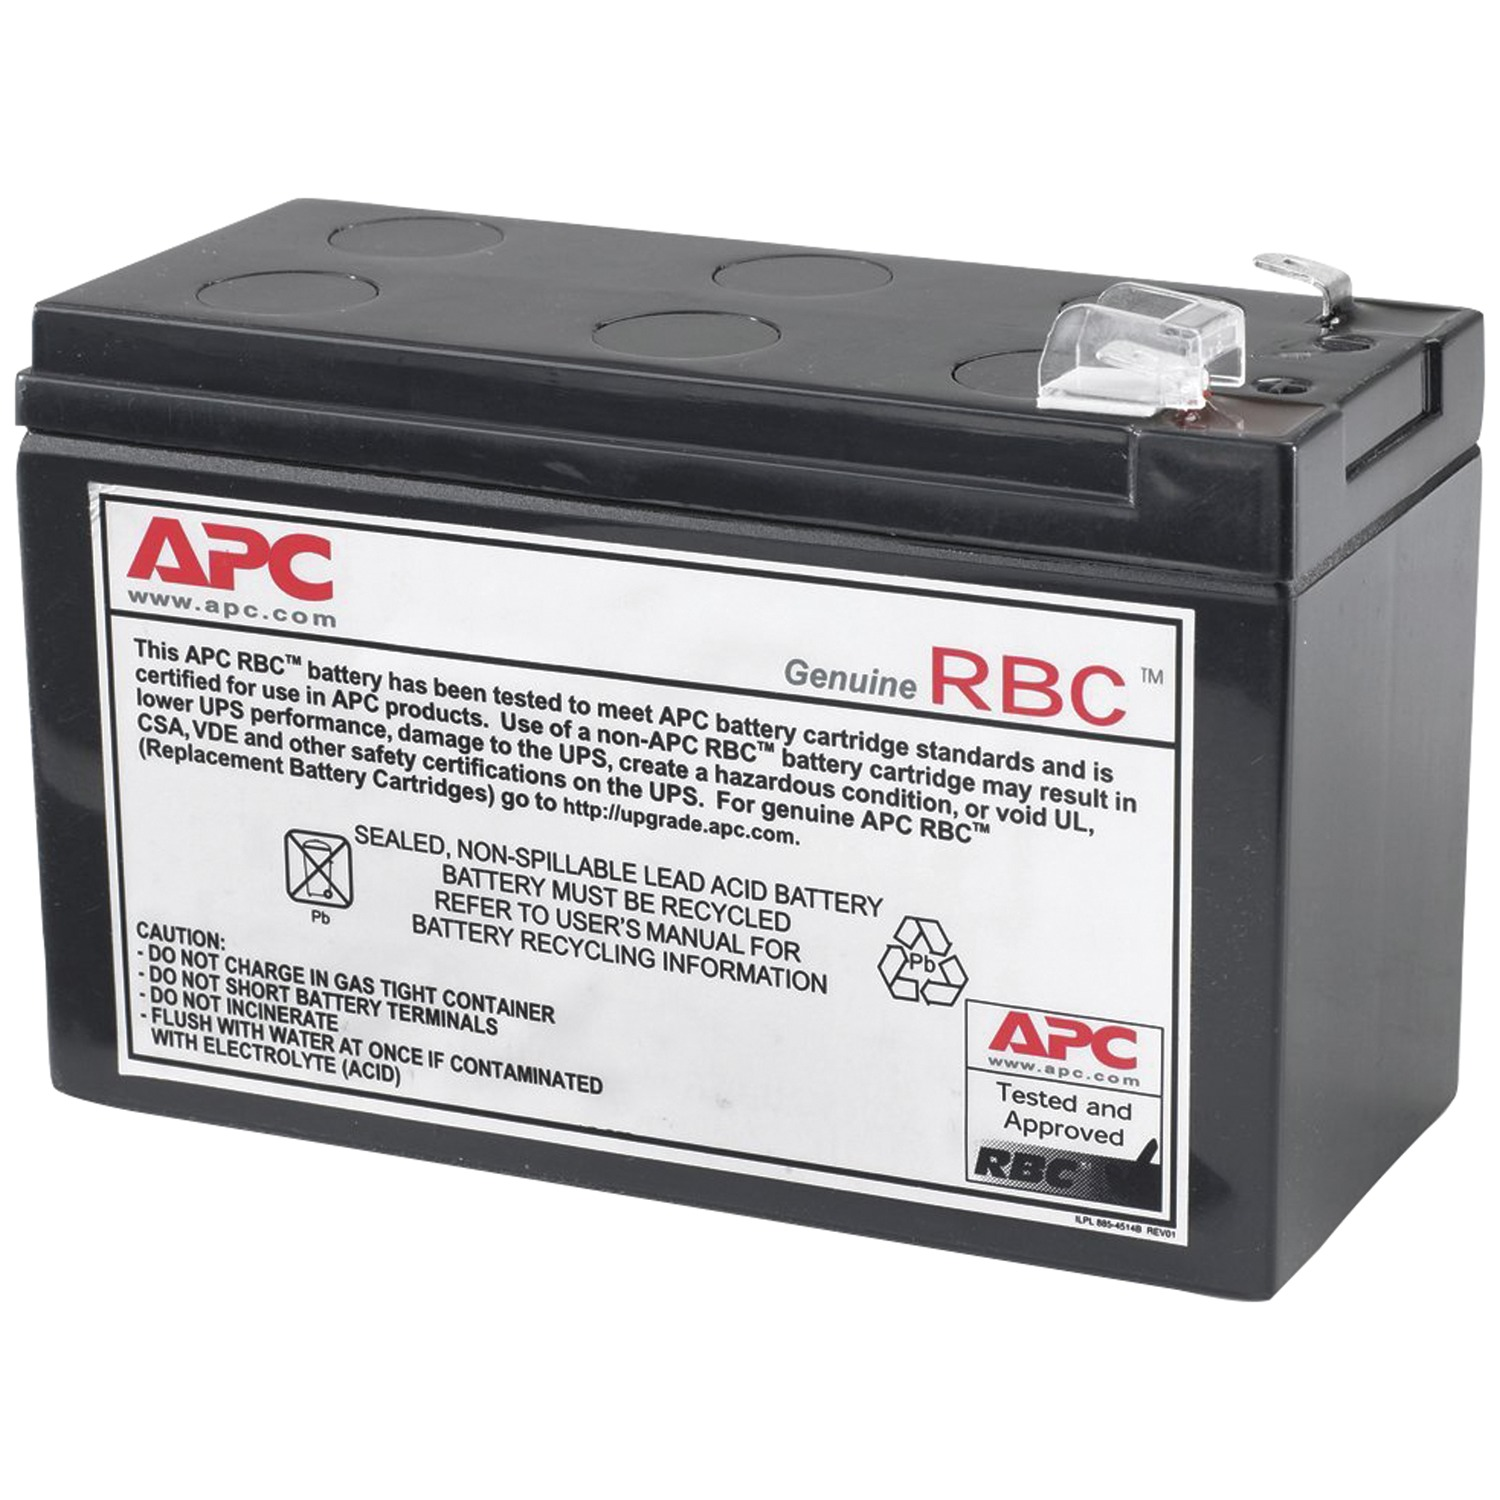 RBC17 Compatible Replacement Battery for PW5115-500 by ...